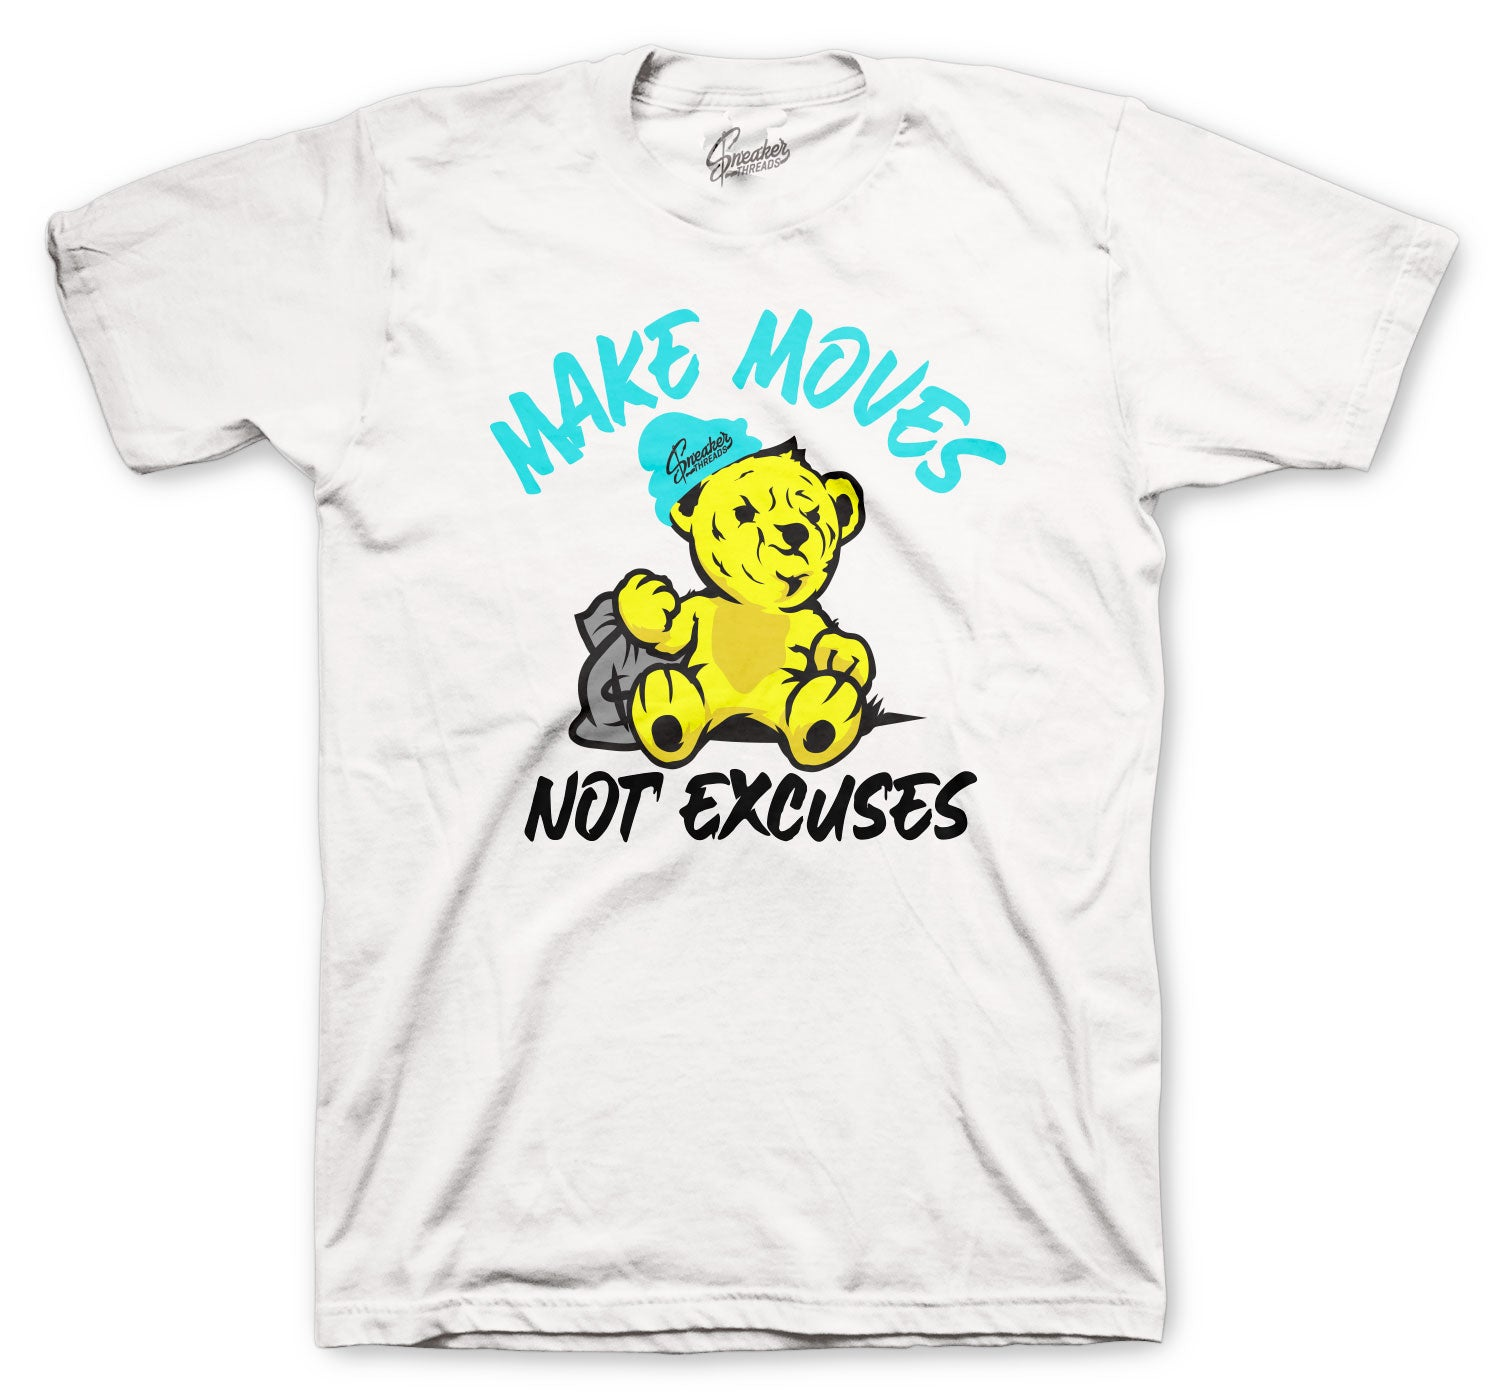 Dunk SB Grateful Money Bear Shirt - White/Yellow